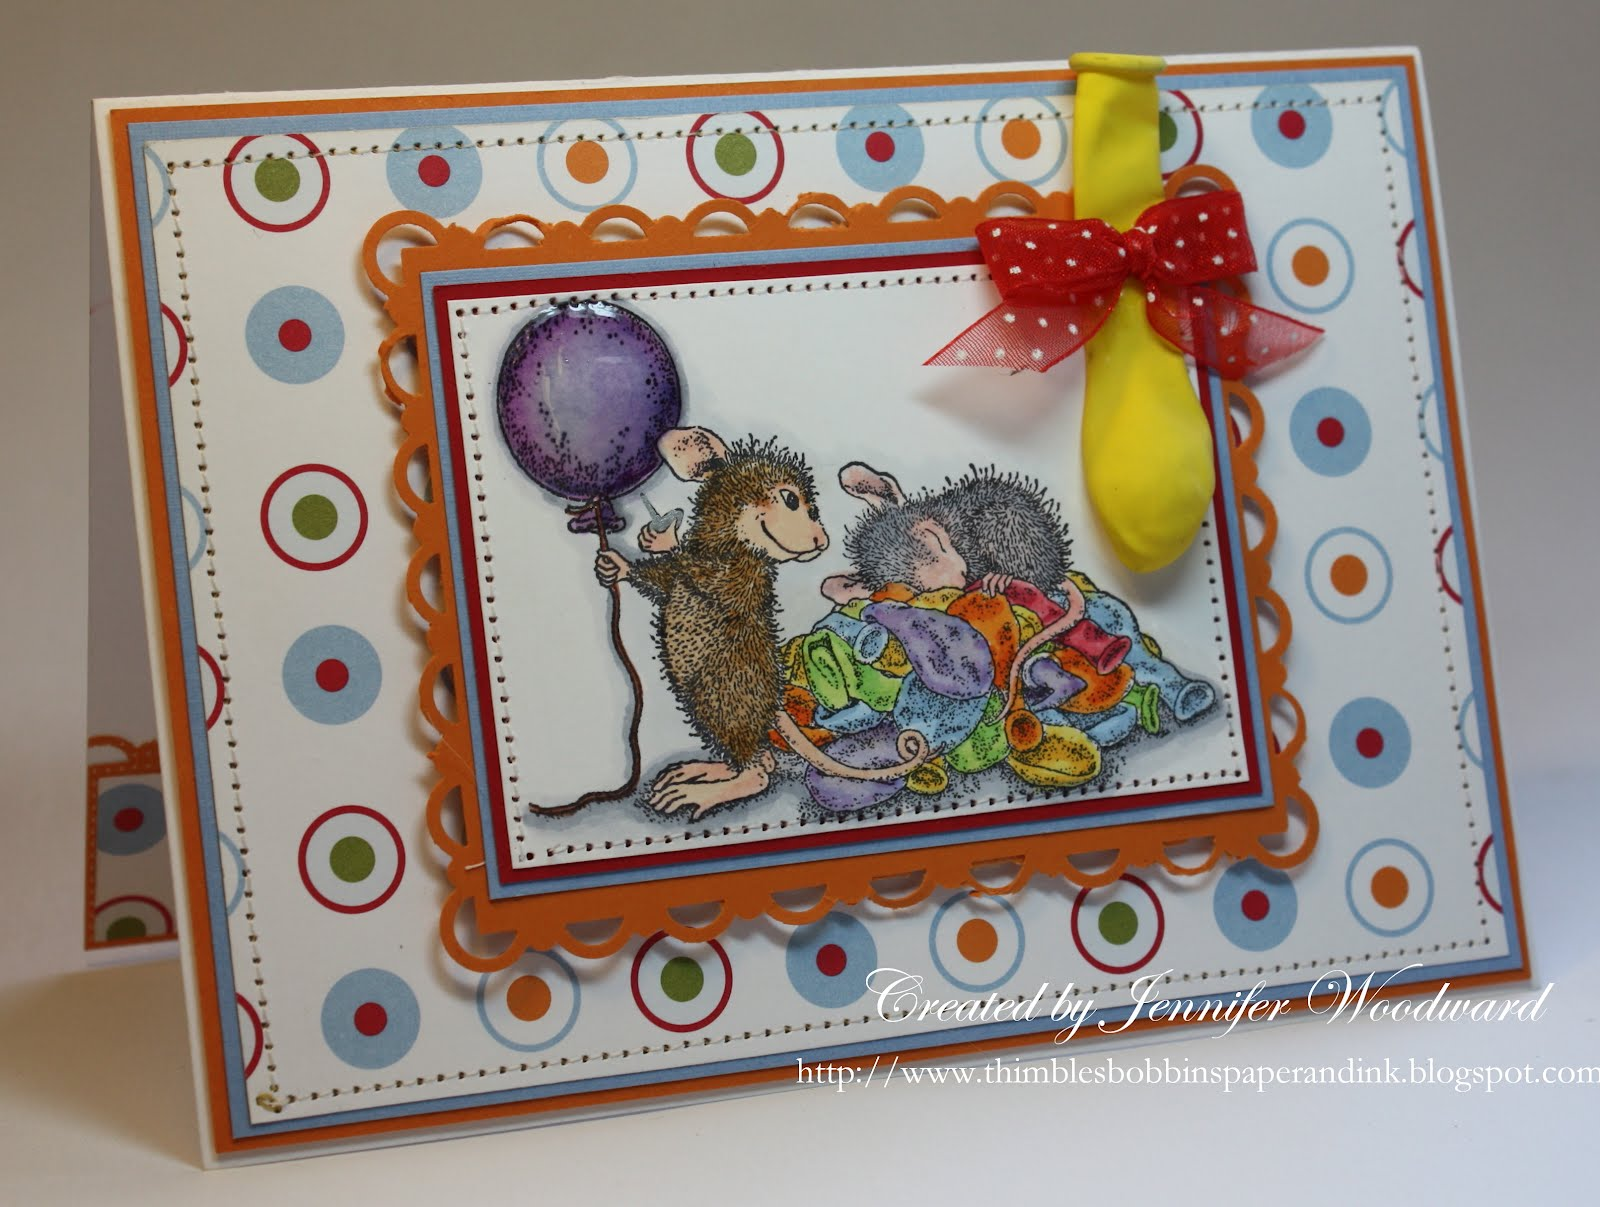 Thimbles, Bobbins, Paper and Ink: March 2012 on house mouse design time, house cleaning services business cards, house mouse christmas,